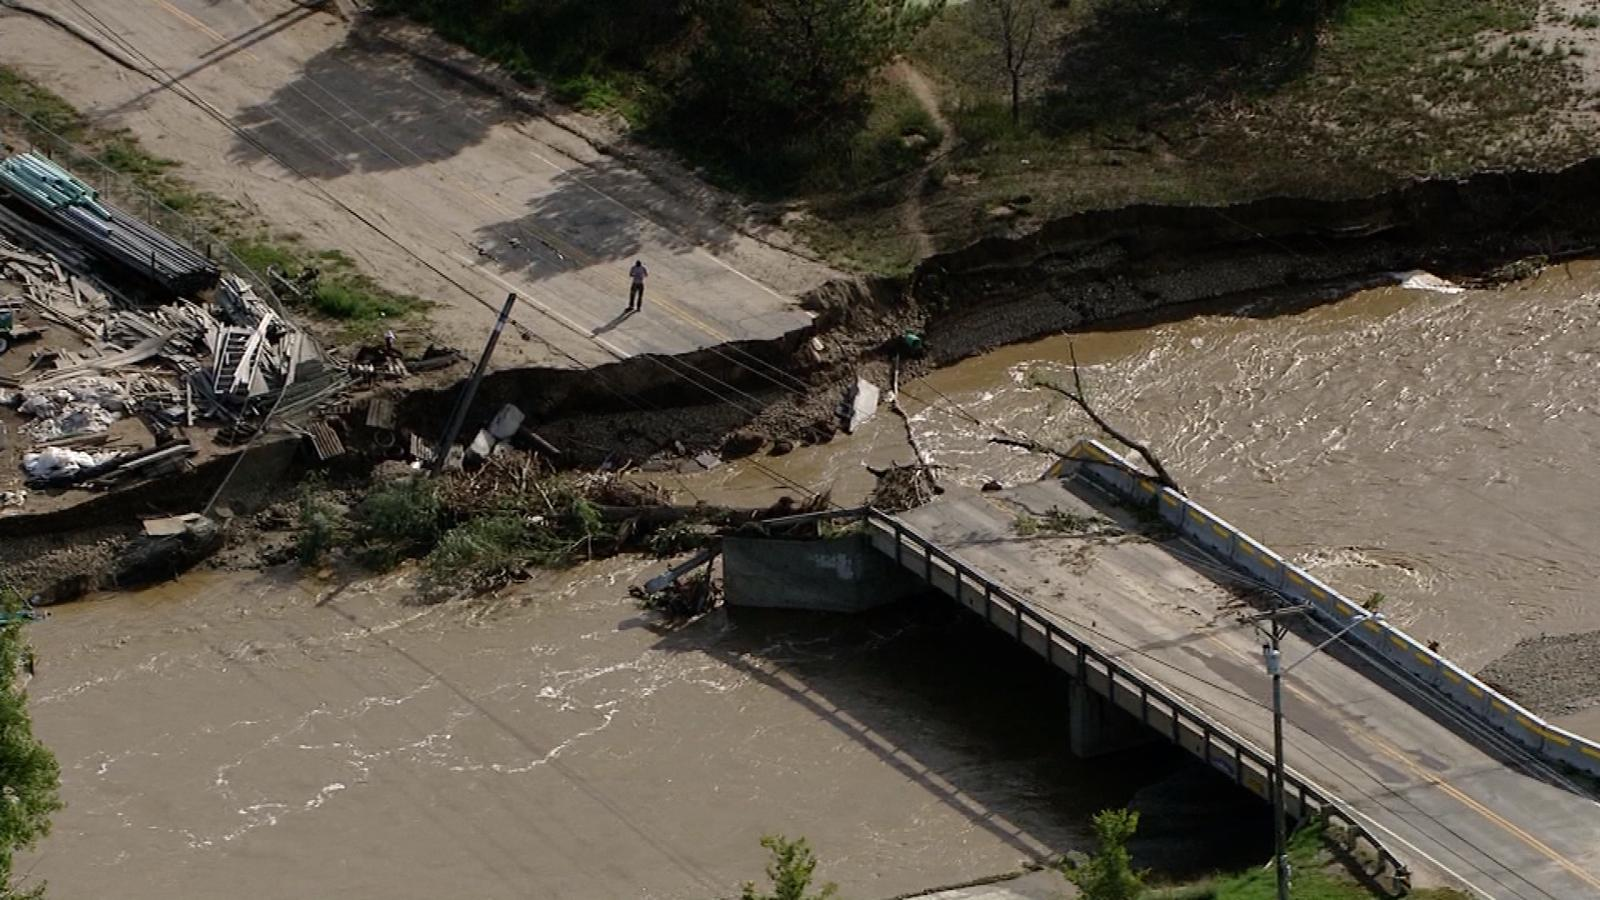 Damage from flooding in Lyons in September 2013. (credit: CBS)